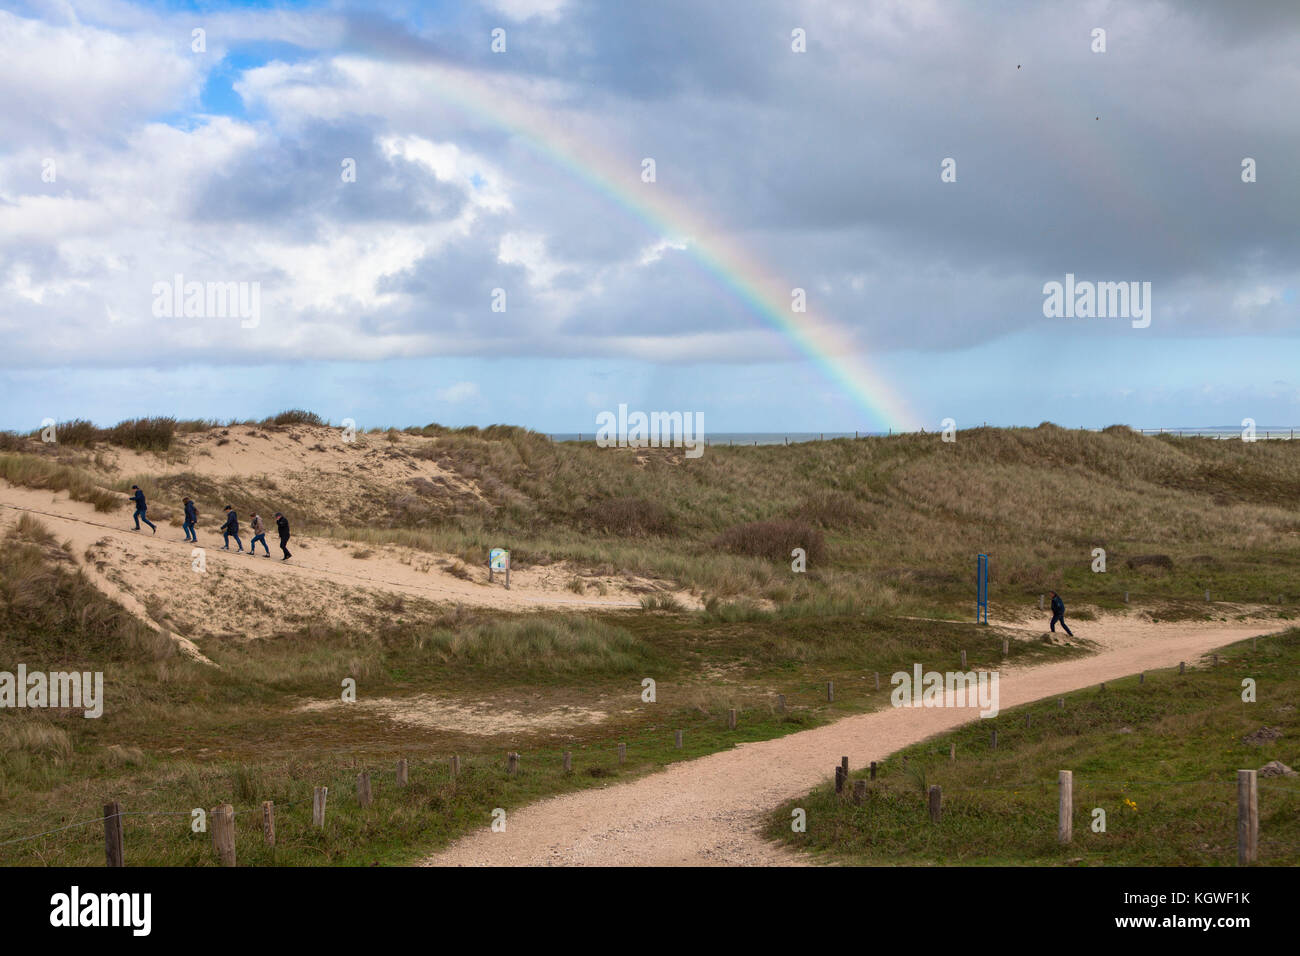 Netherlands, Zeeland, path through the dunes in the nature reserve de Manteling between Domburg and Oostkapelle - Stock Image